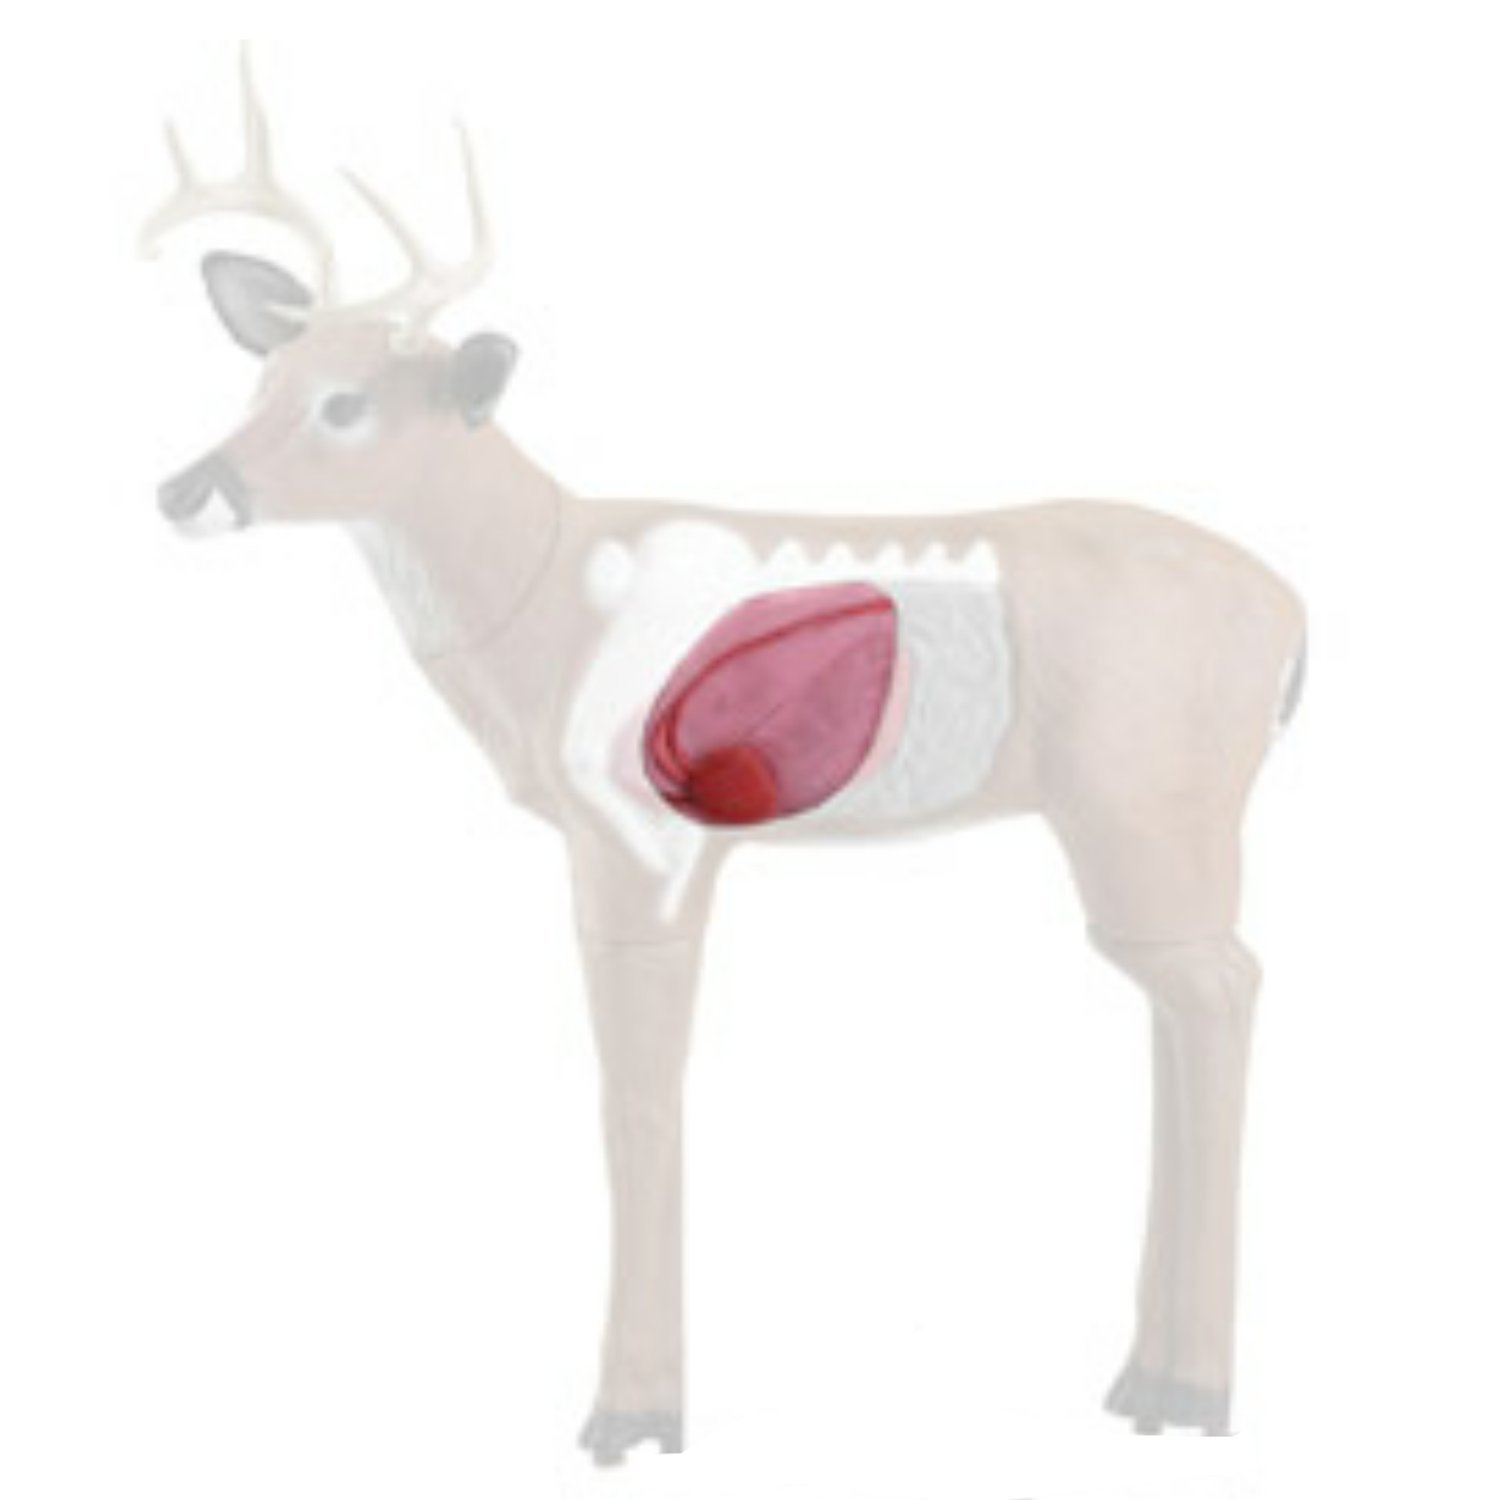 Delta Archers Choice Real-World Buck Replacement Vital Target